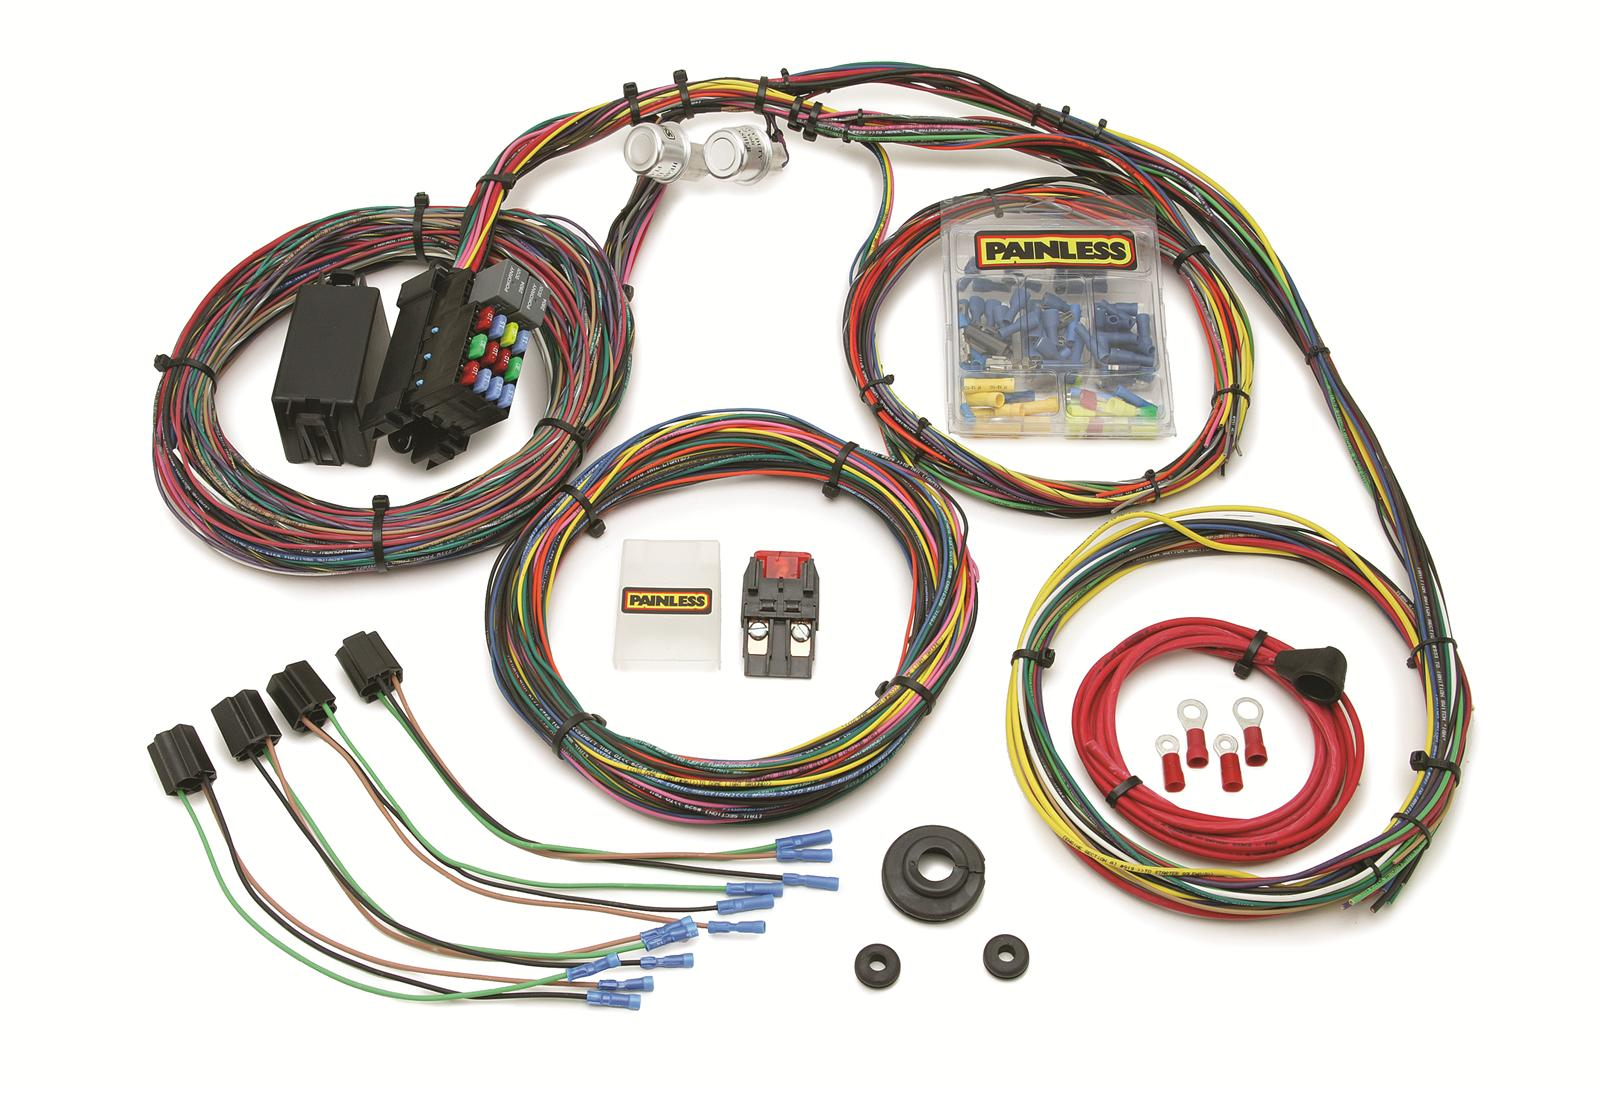 painless performance 21 circuit mopar color coded universal wiring harnesses 10127 Universal Painless Wiring Harness